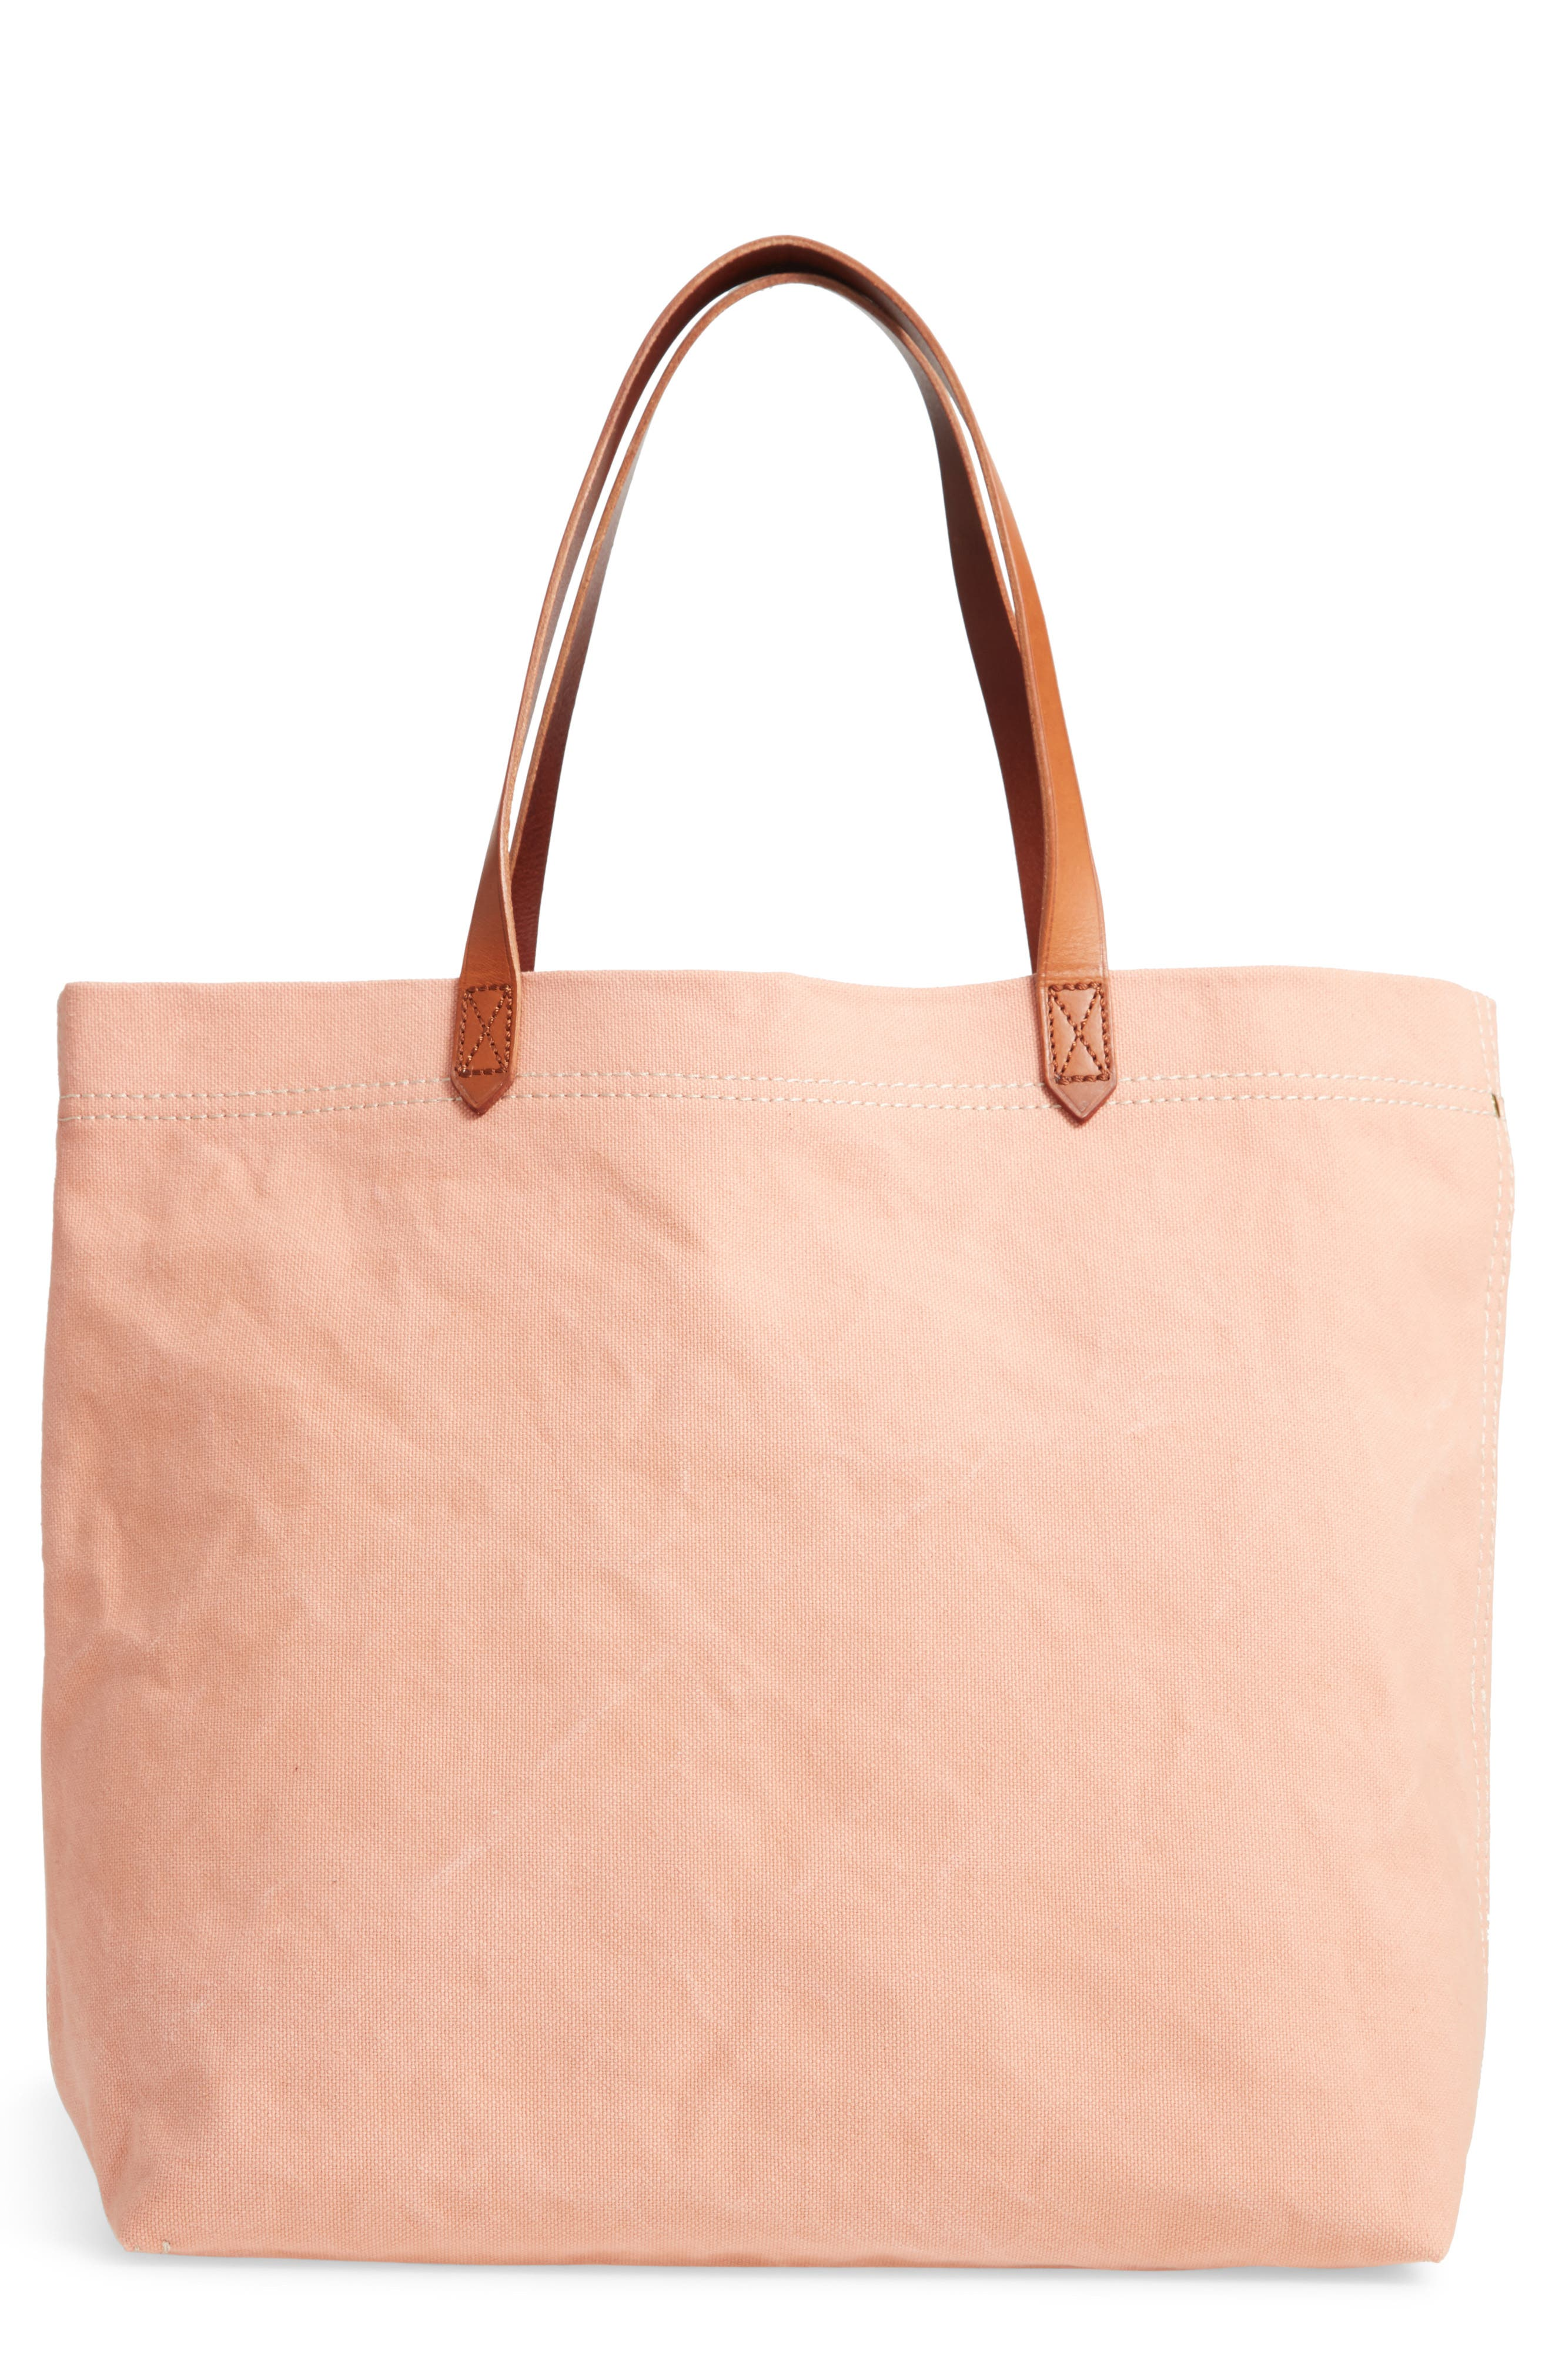 MADEWELL, Canvas Transport Tote, Main thumbnail 1, color, ANTIQUE CORAL